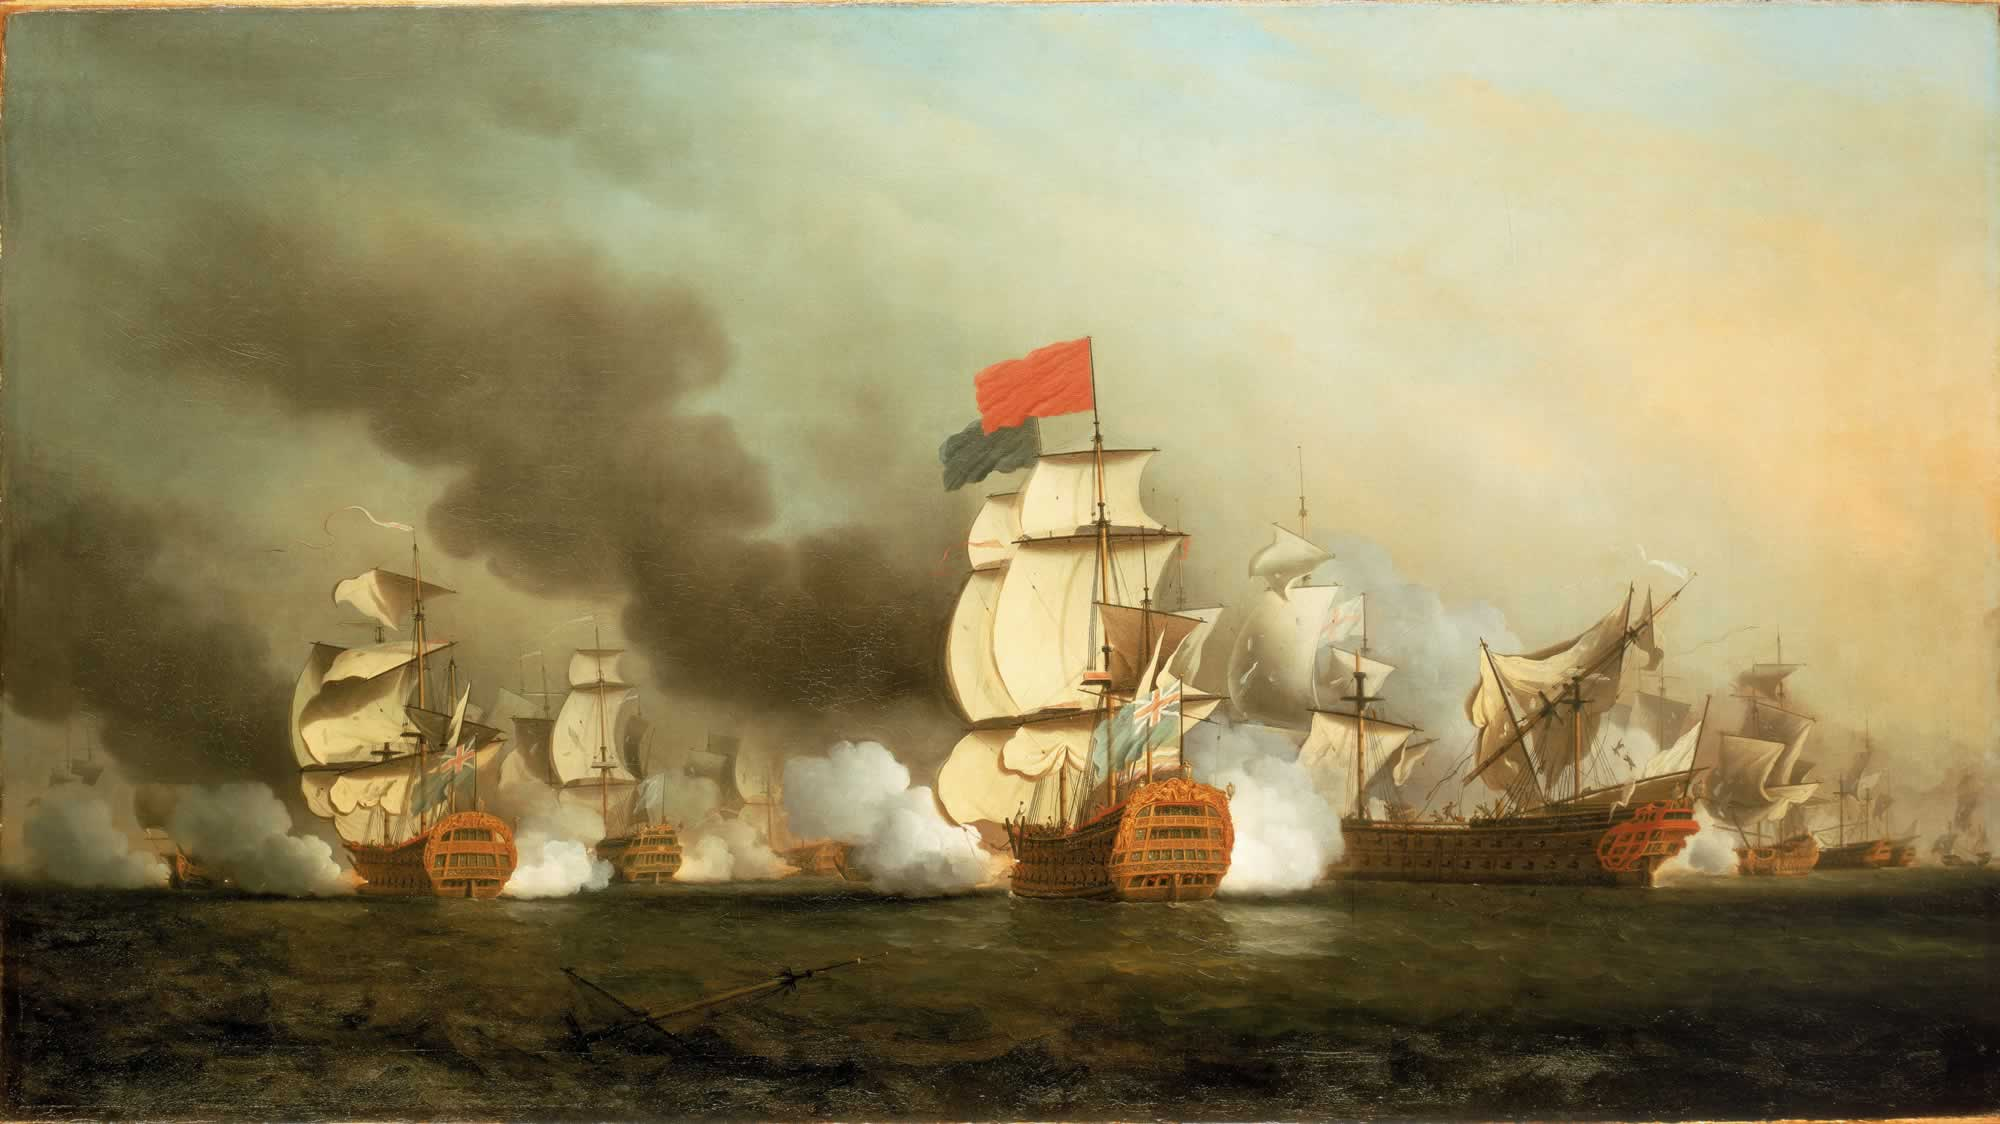 File:Battle of Cape Finisterre, 1747.jpg